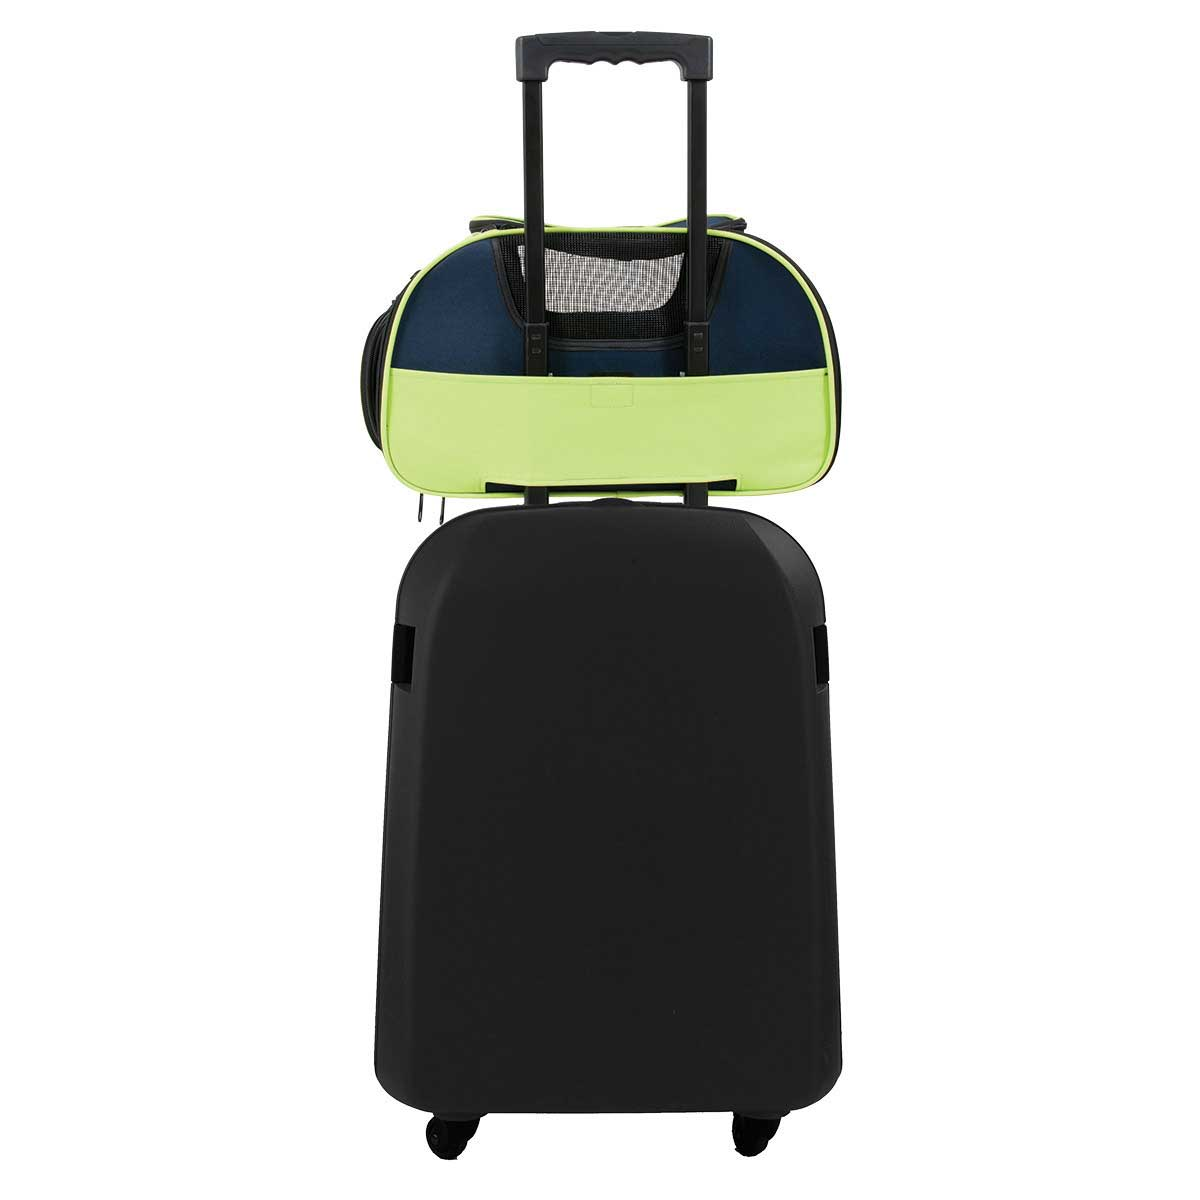 Petmate See & Fly Carrier on top of Suitcase